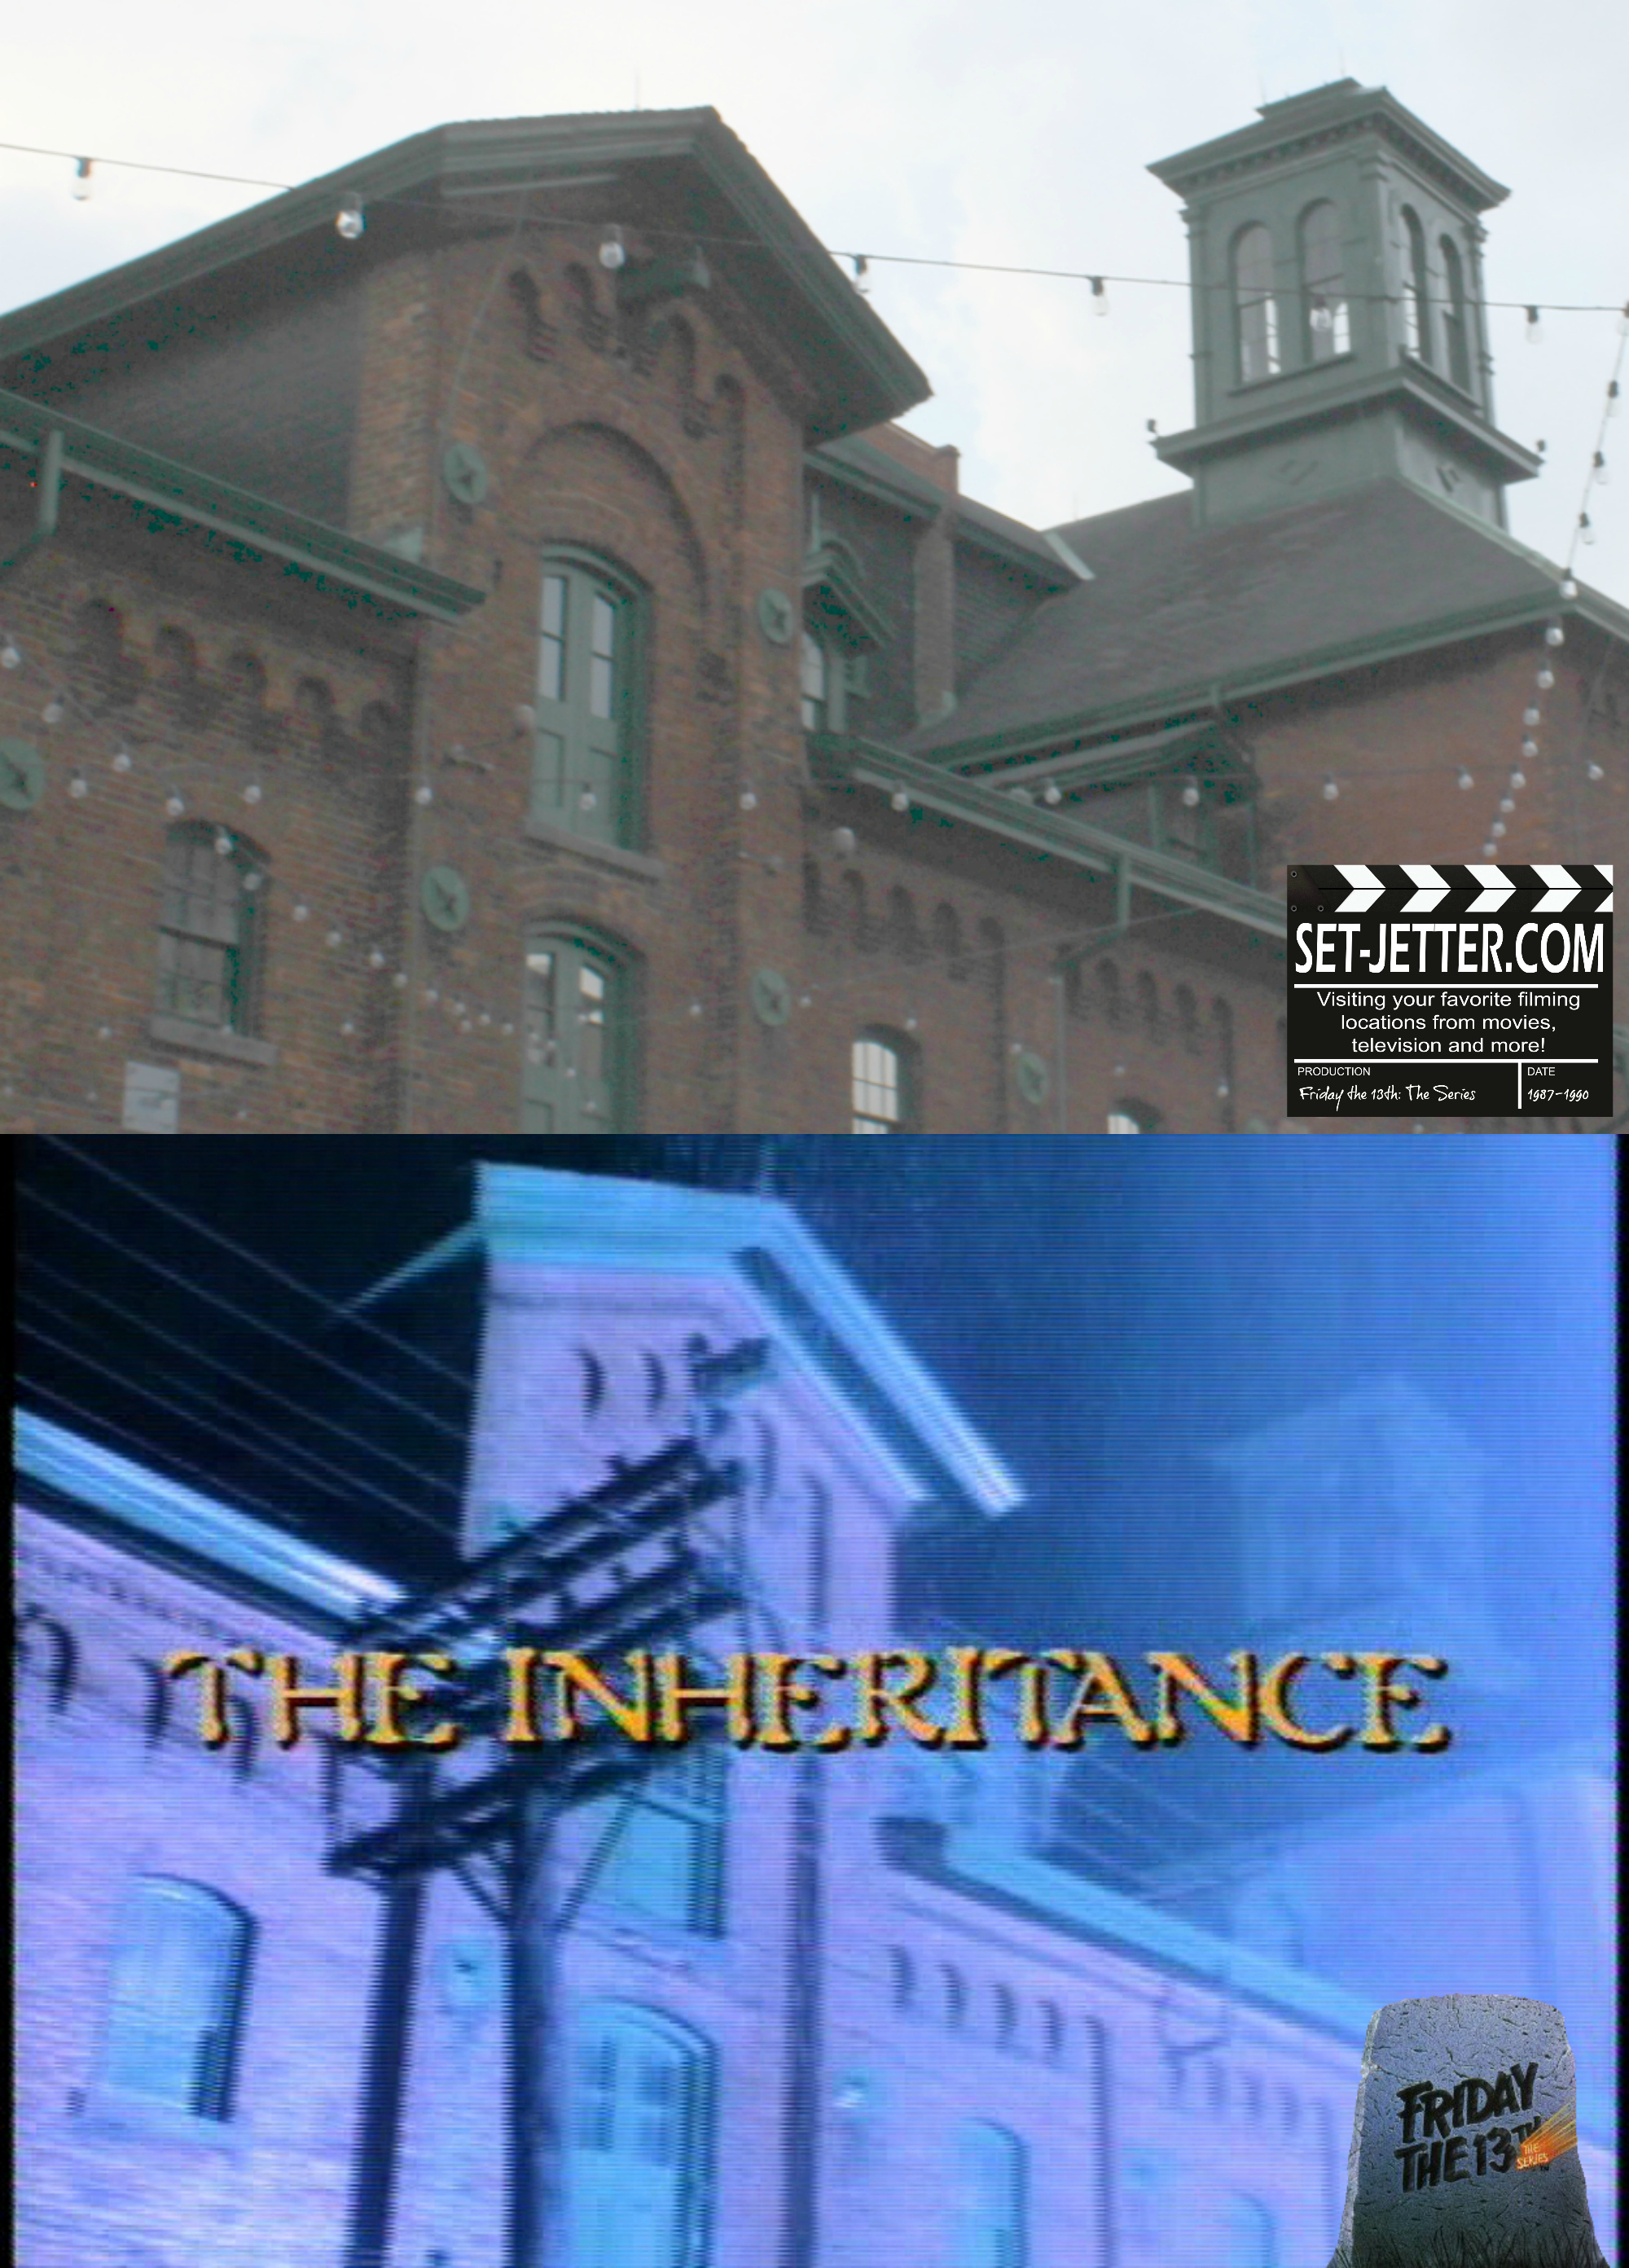 Friday the 13th The Series comparison 02.jpg